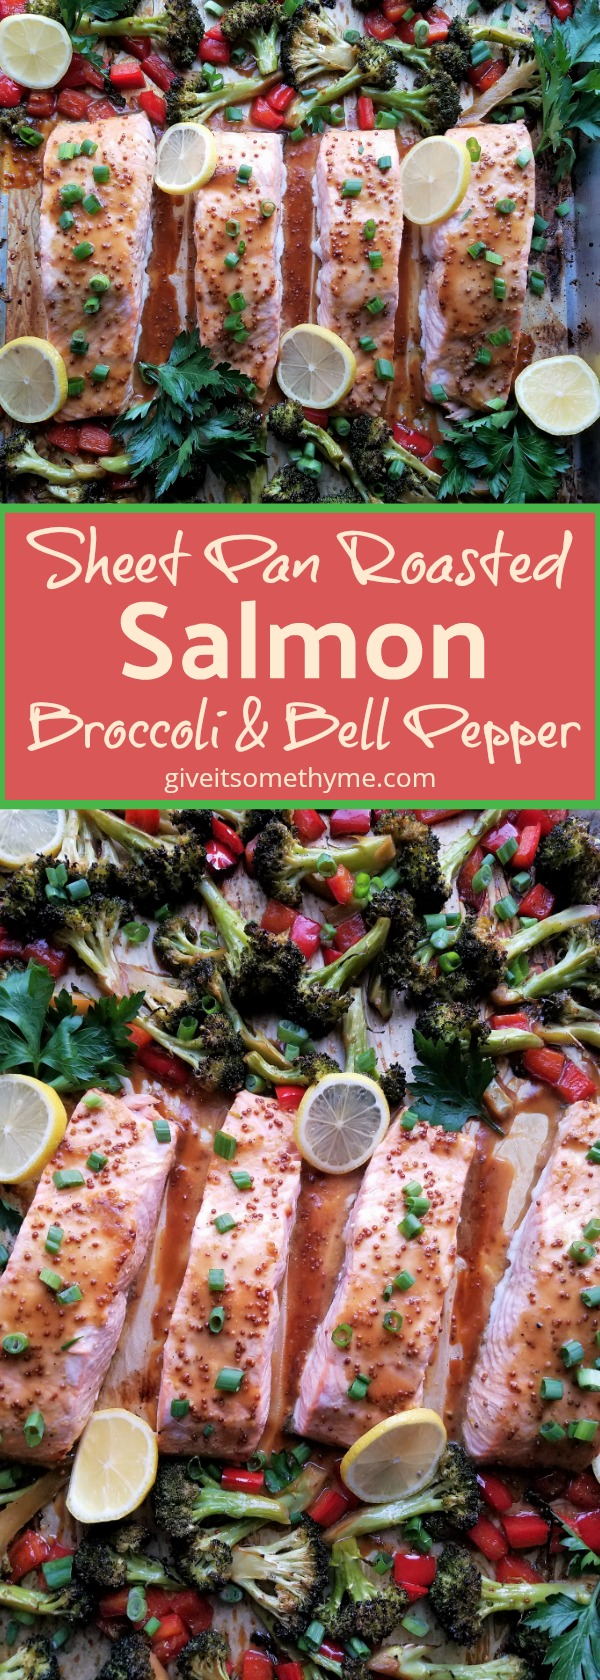 Sheet Pan Roasted Salmon Broccoli & Bell Pepper - Give it Some Thyme